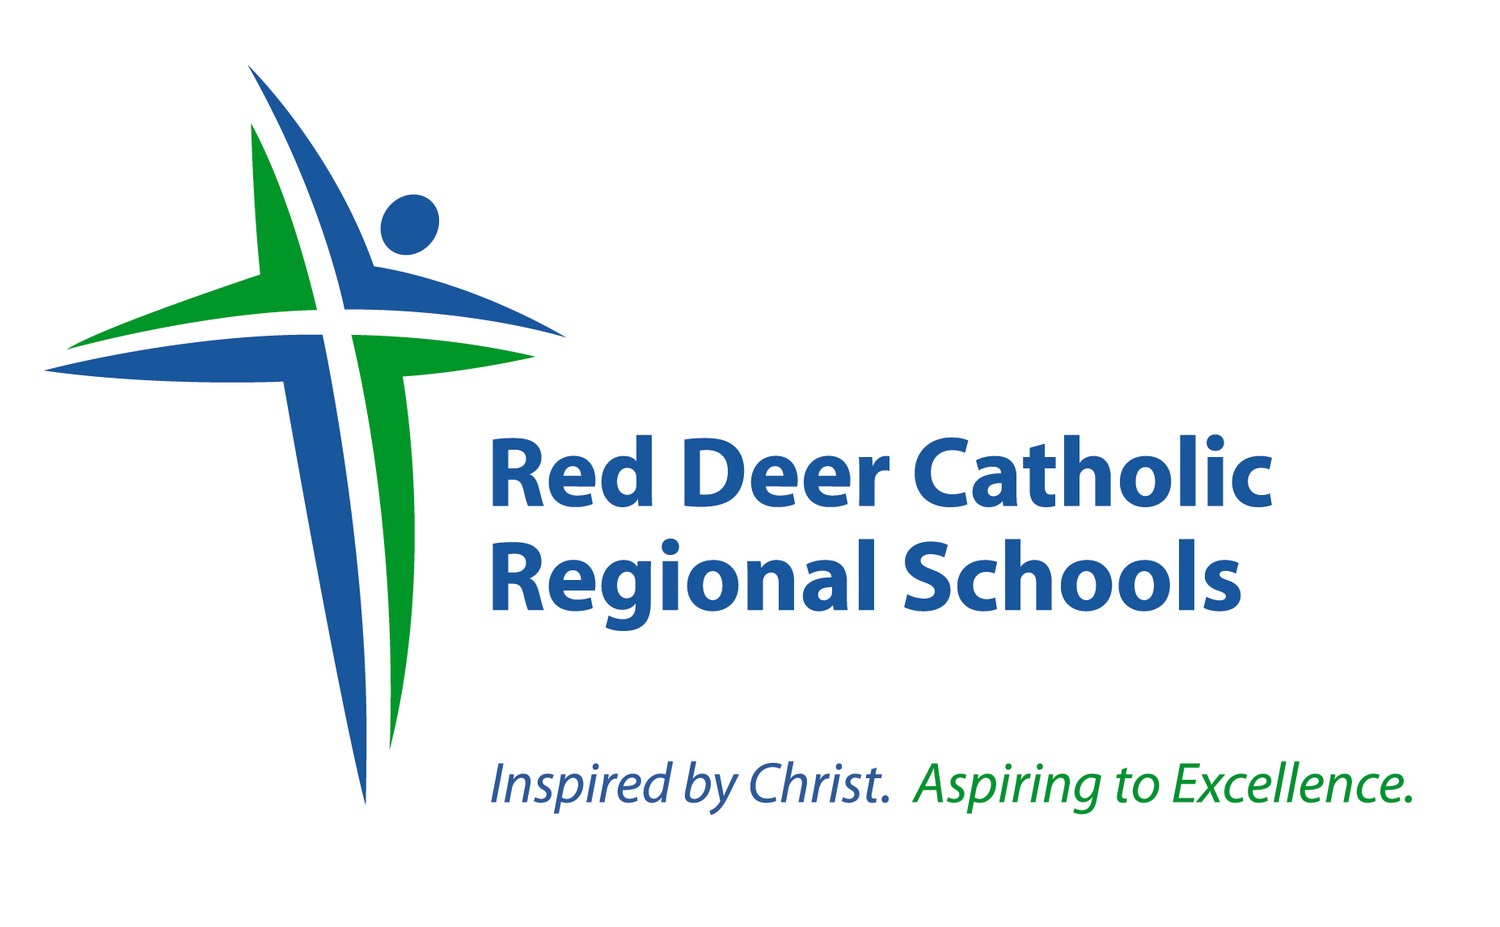 Red Deer Catholic Regional Schools